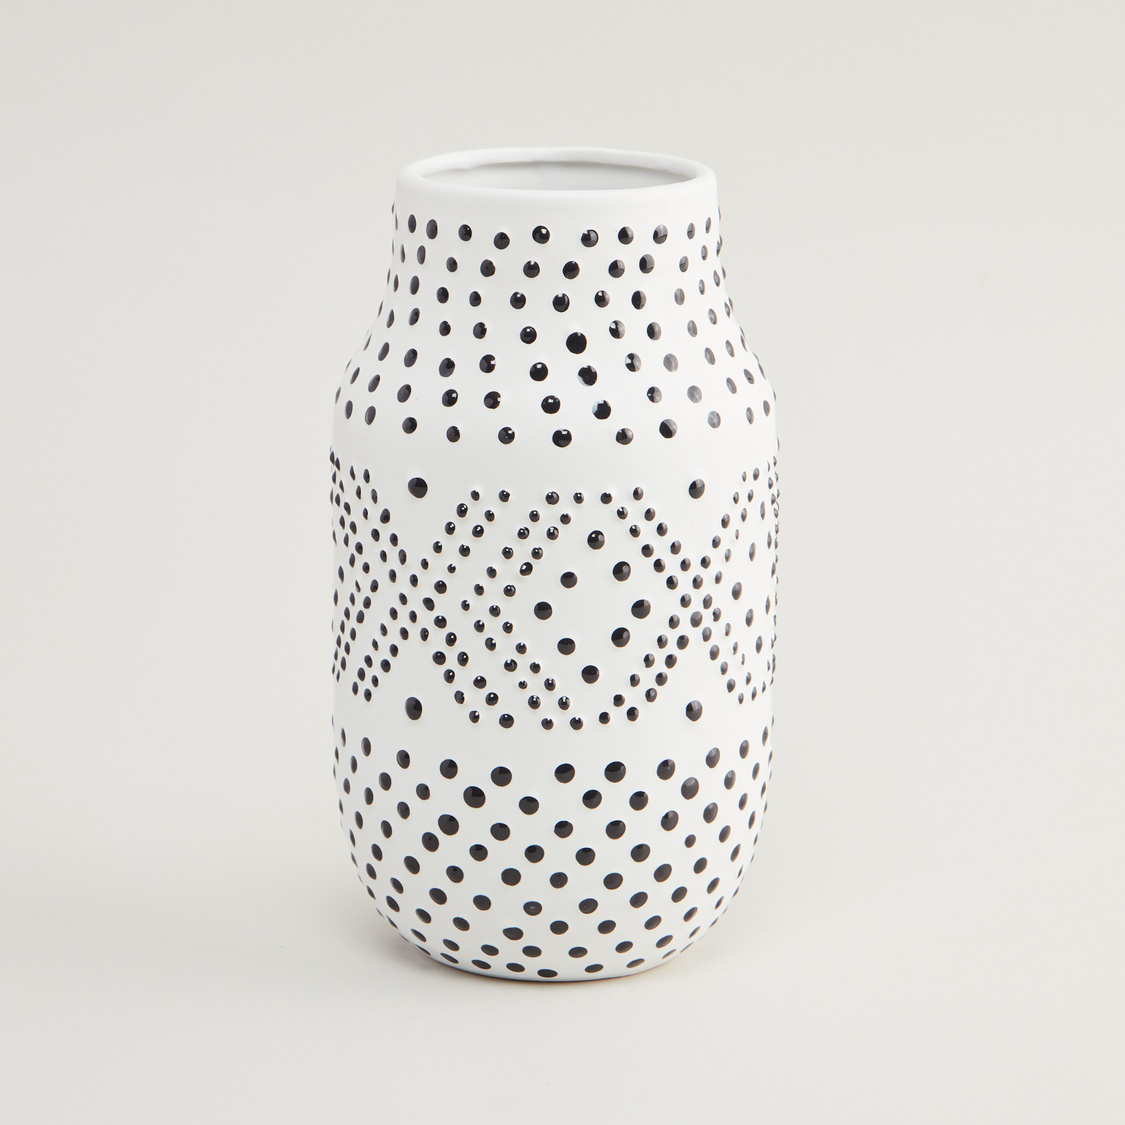 Ceramic Vase with Slip Trailed Detail - 11.3x11.3x20 cms